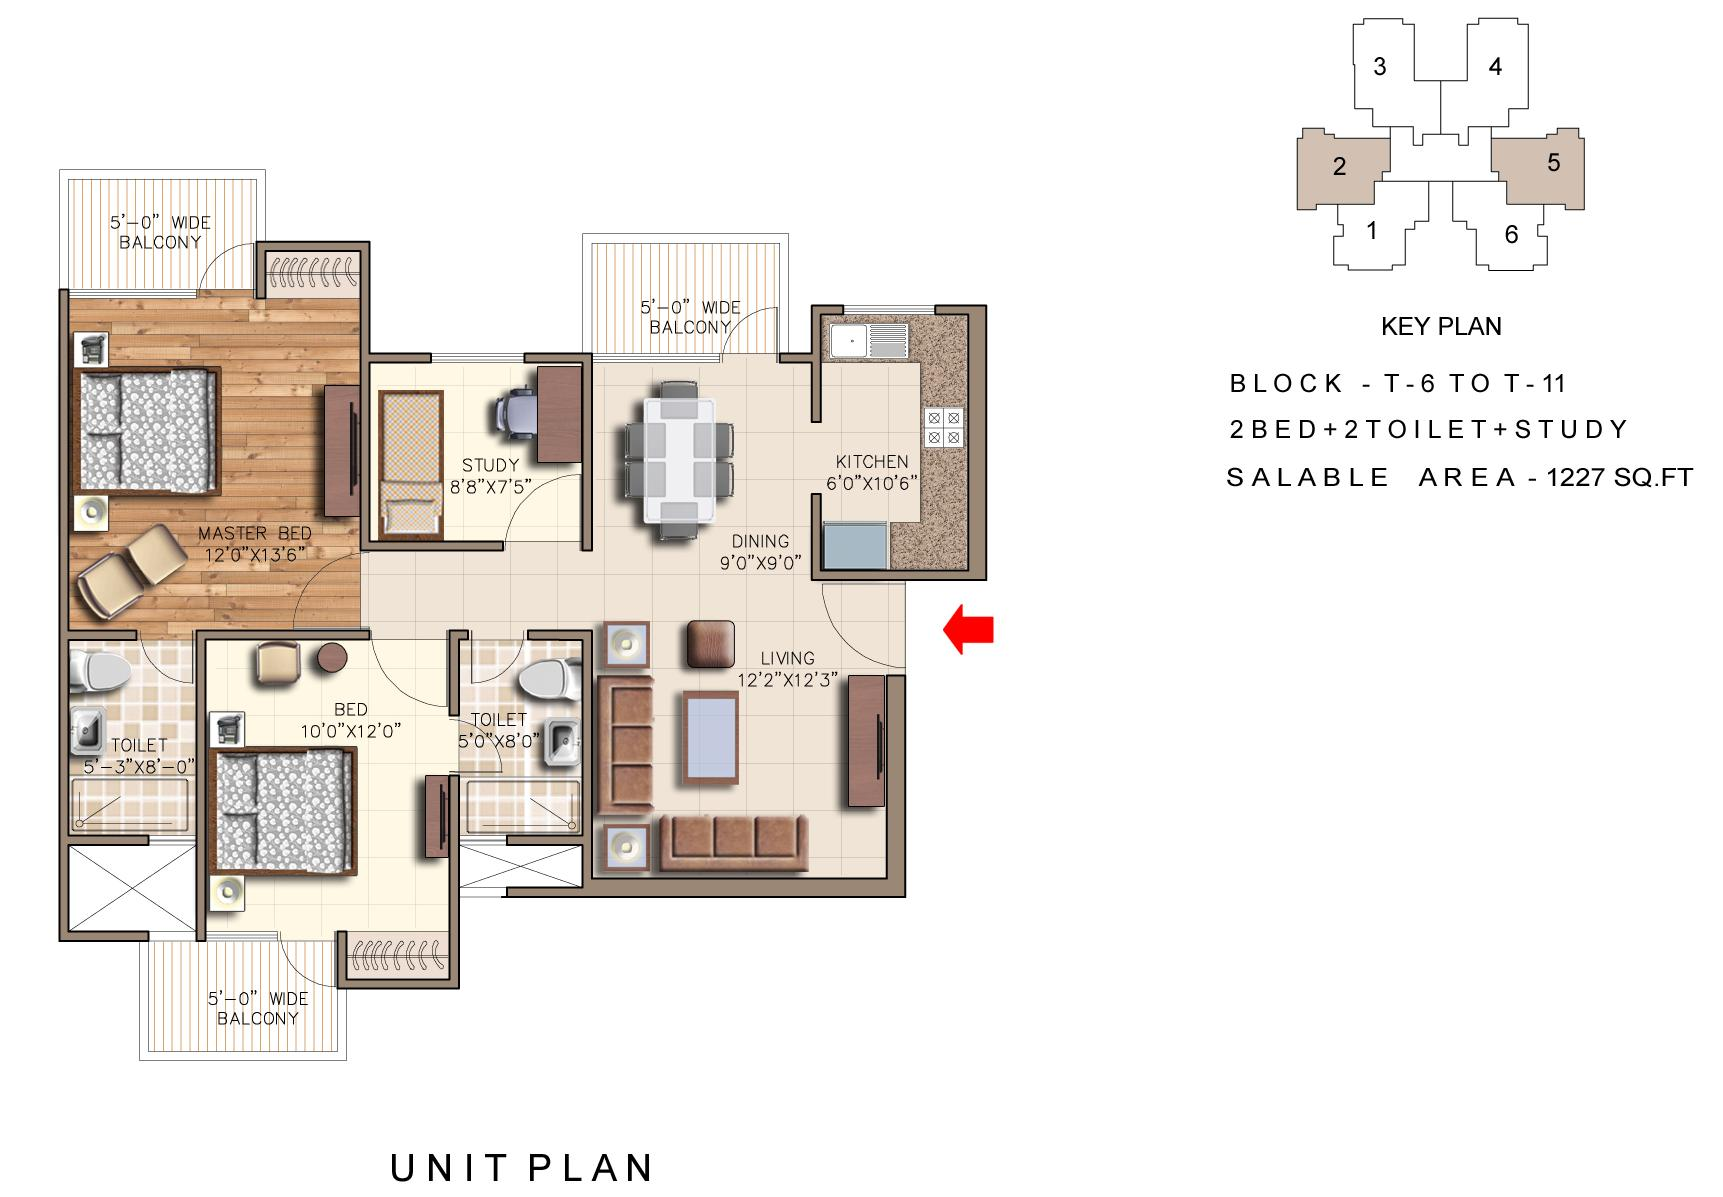 rudra aqua casa floor plan 2bhk 2toilet 1227 sqft